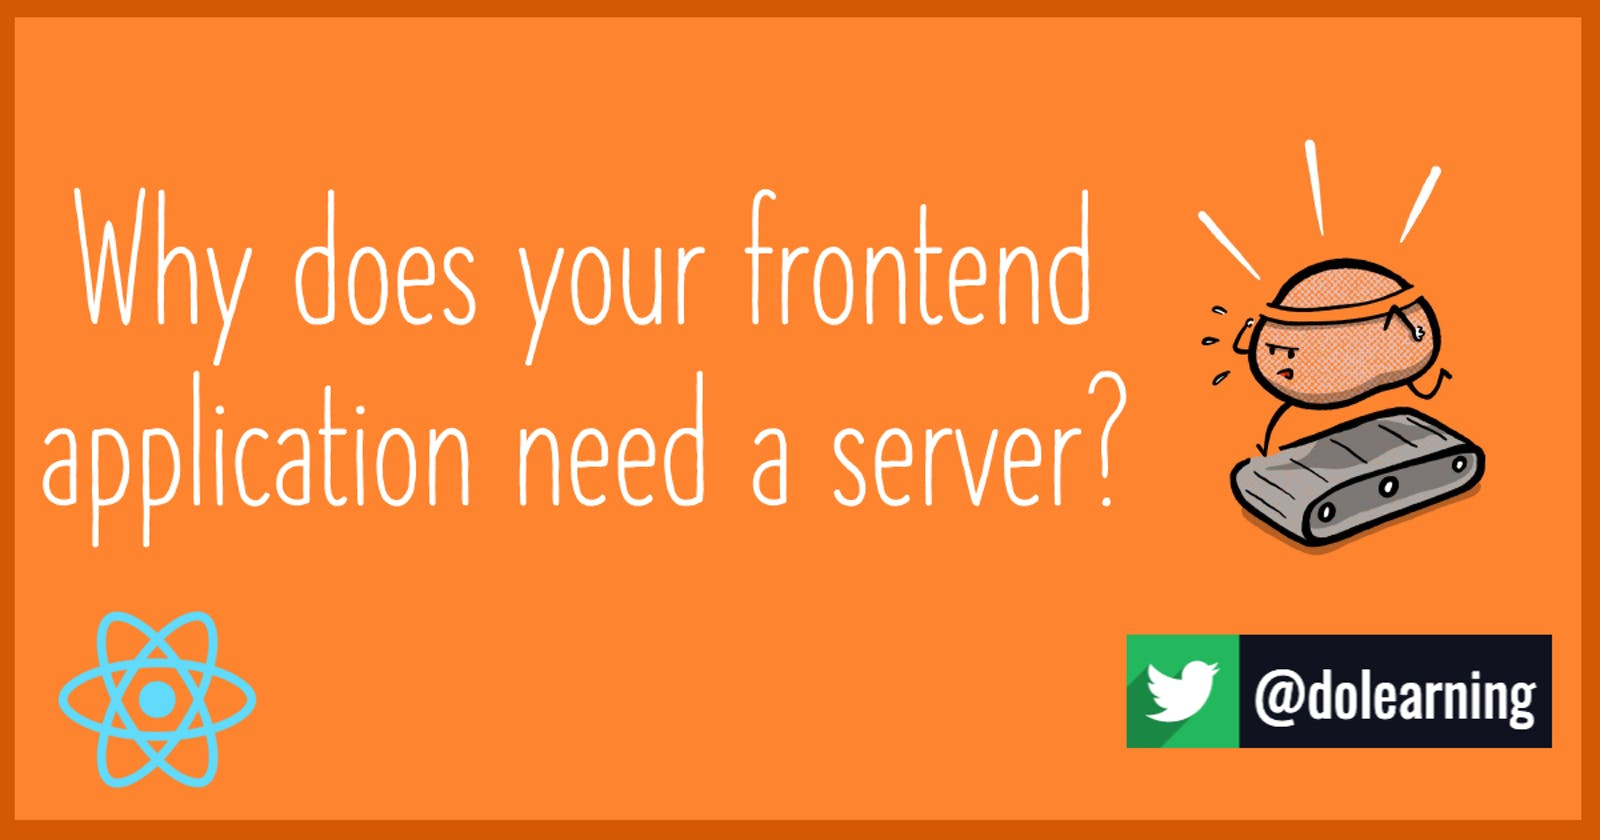 Why does your frontend application need a server?